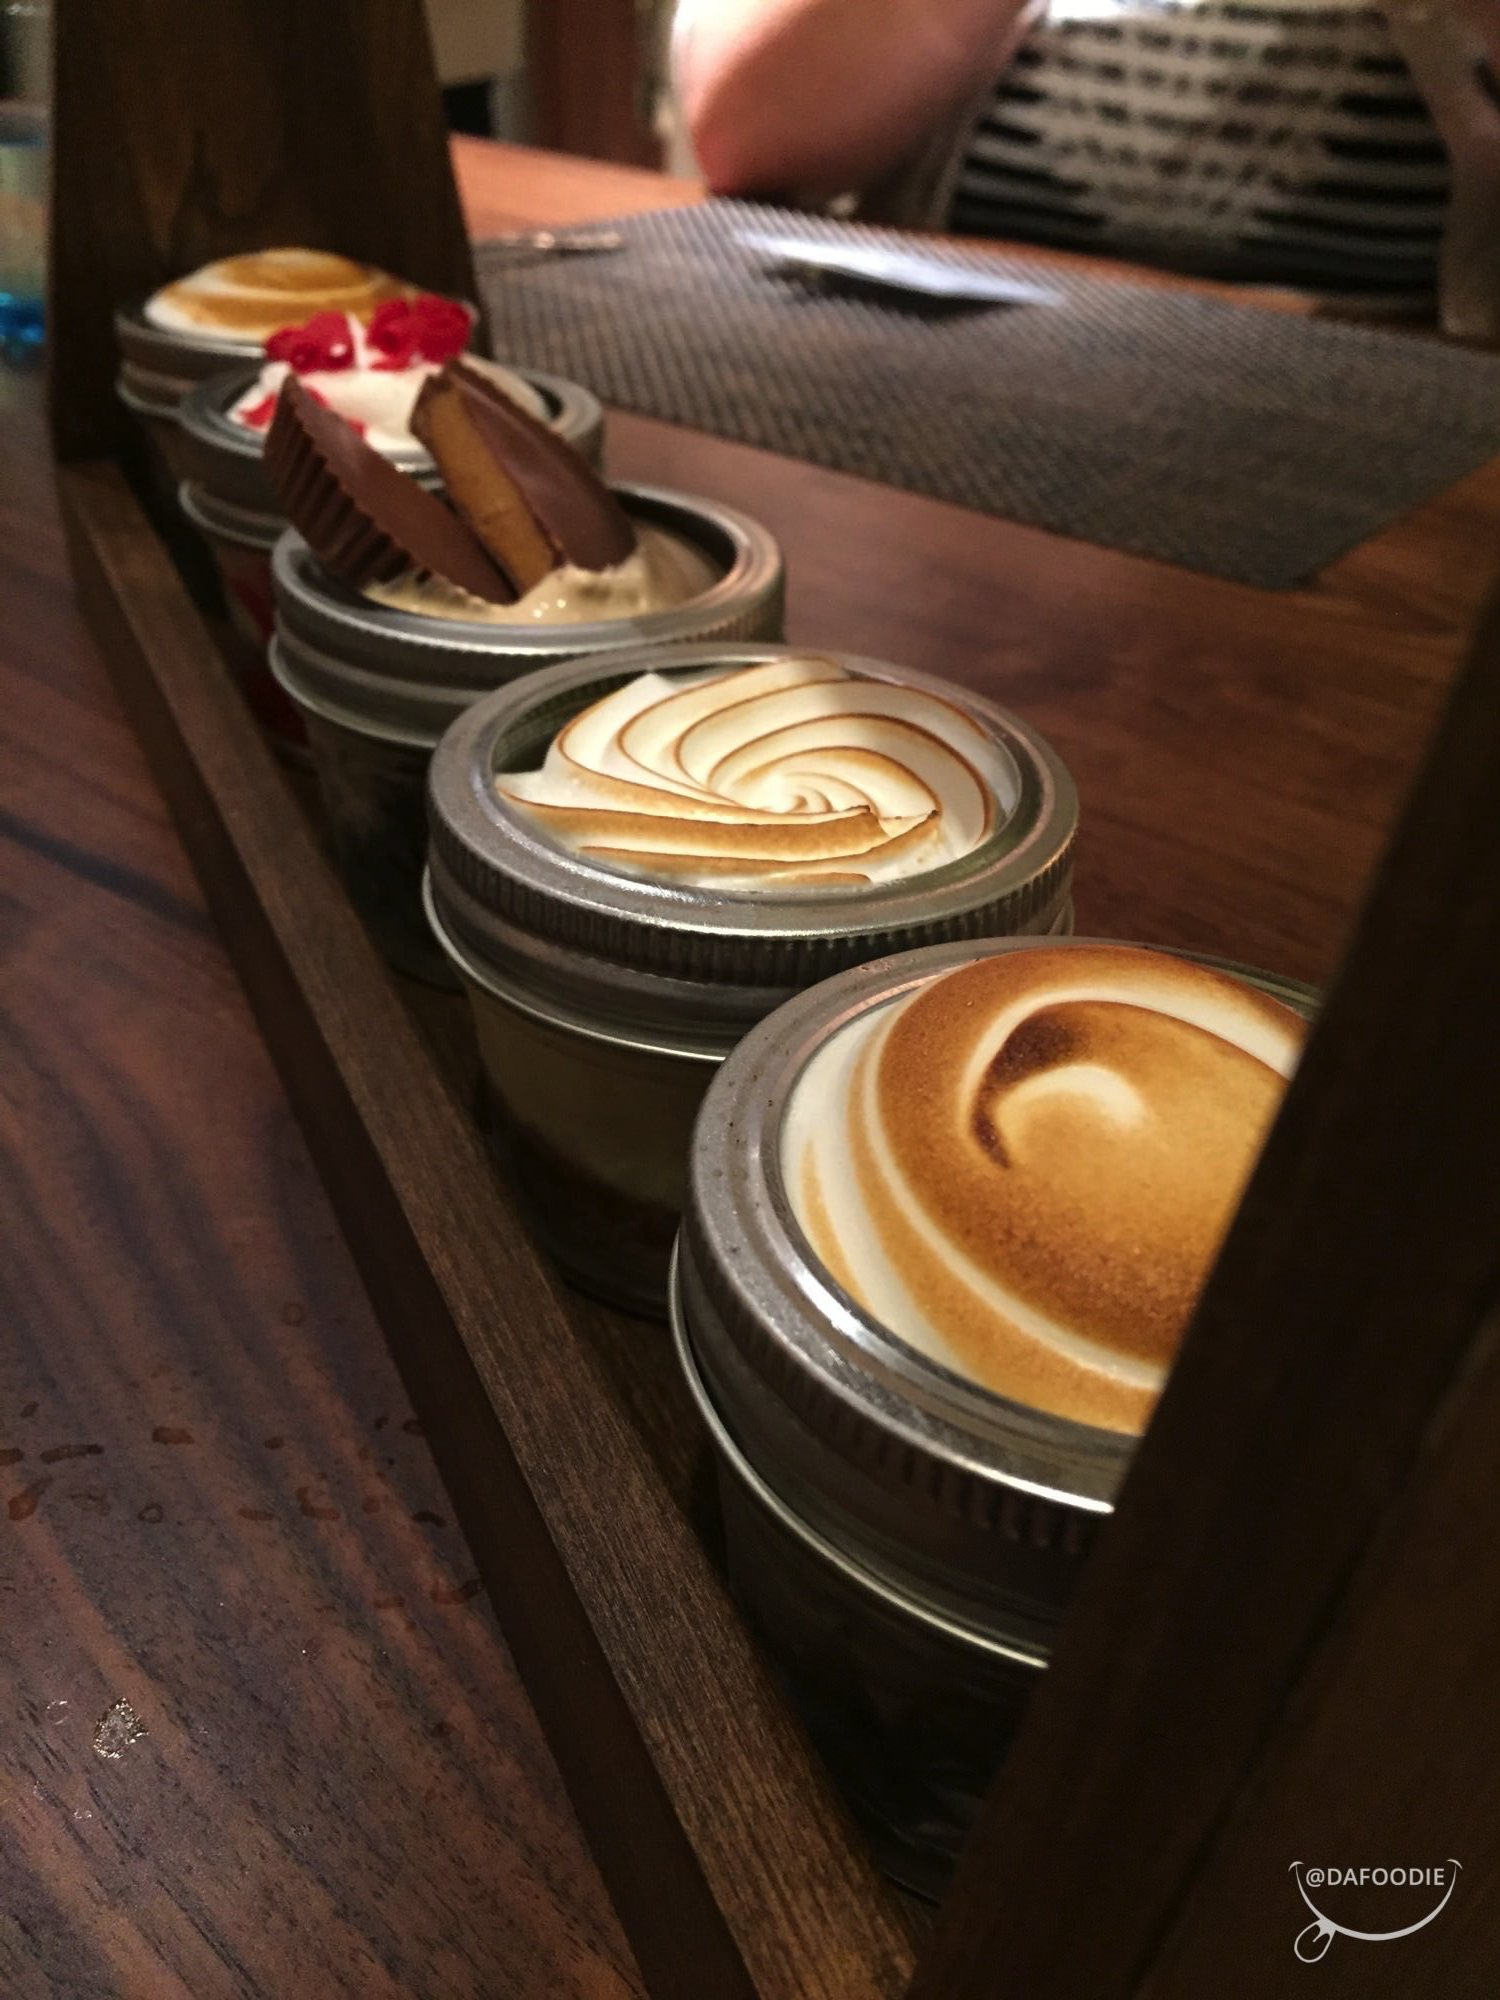 Chef's desserts - key lime pie, strawberry shortcake, s'mores, peanut butter cup.